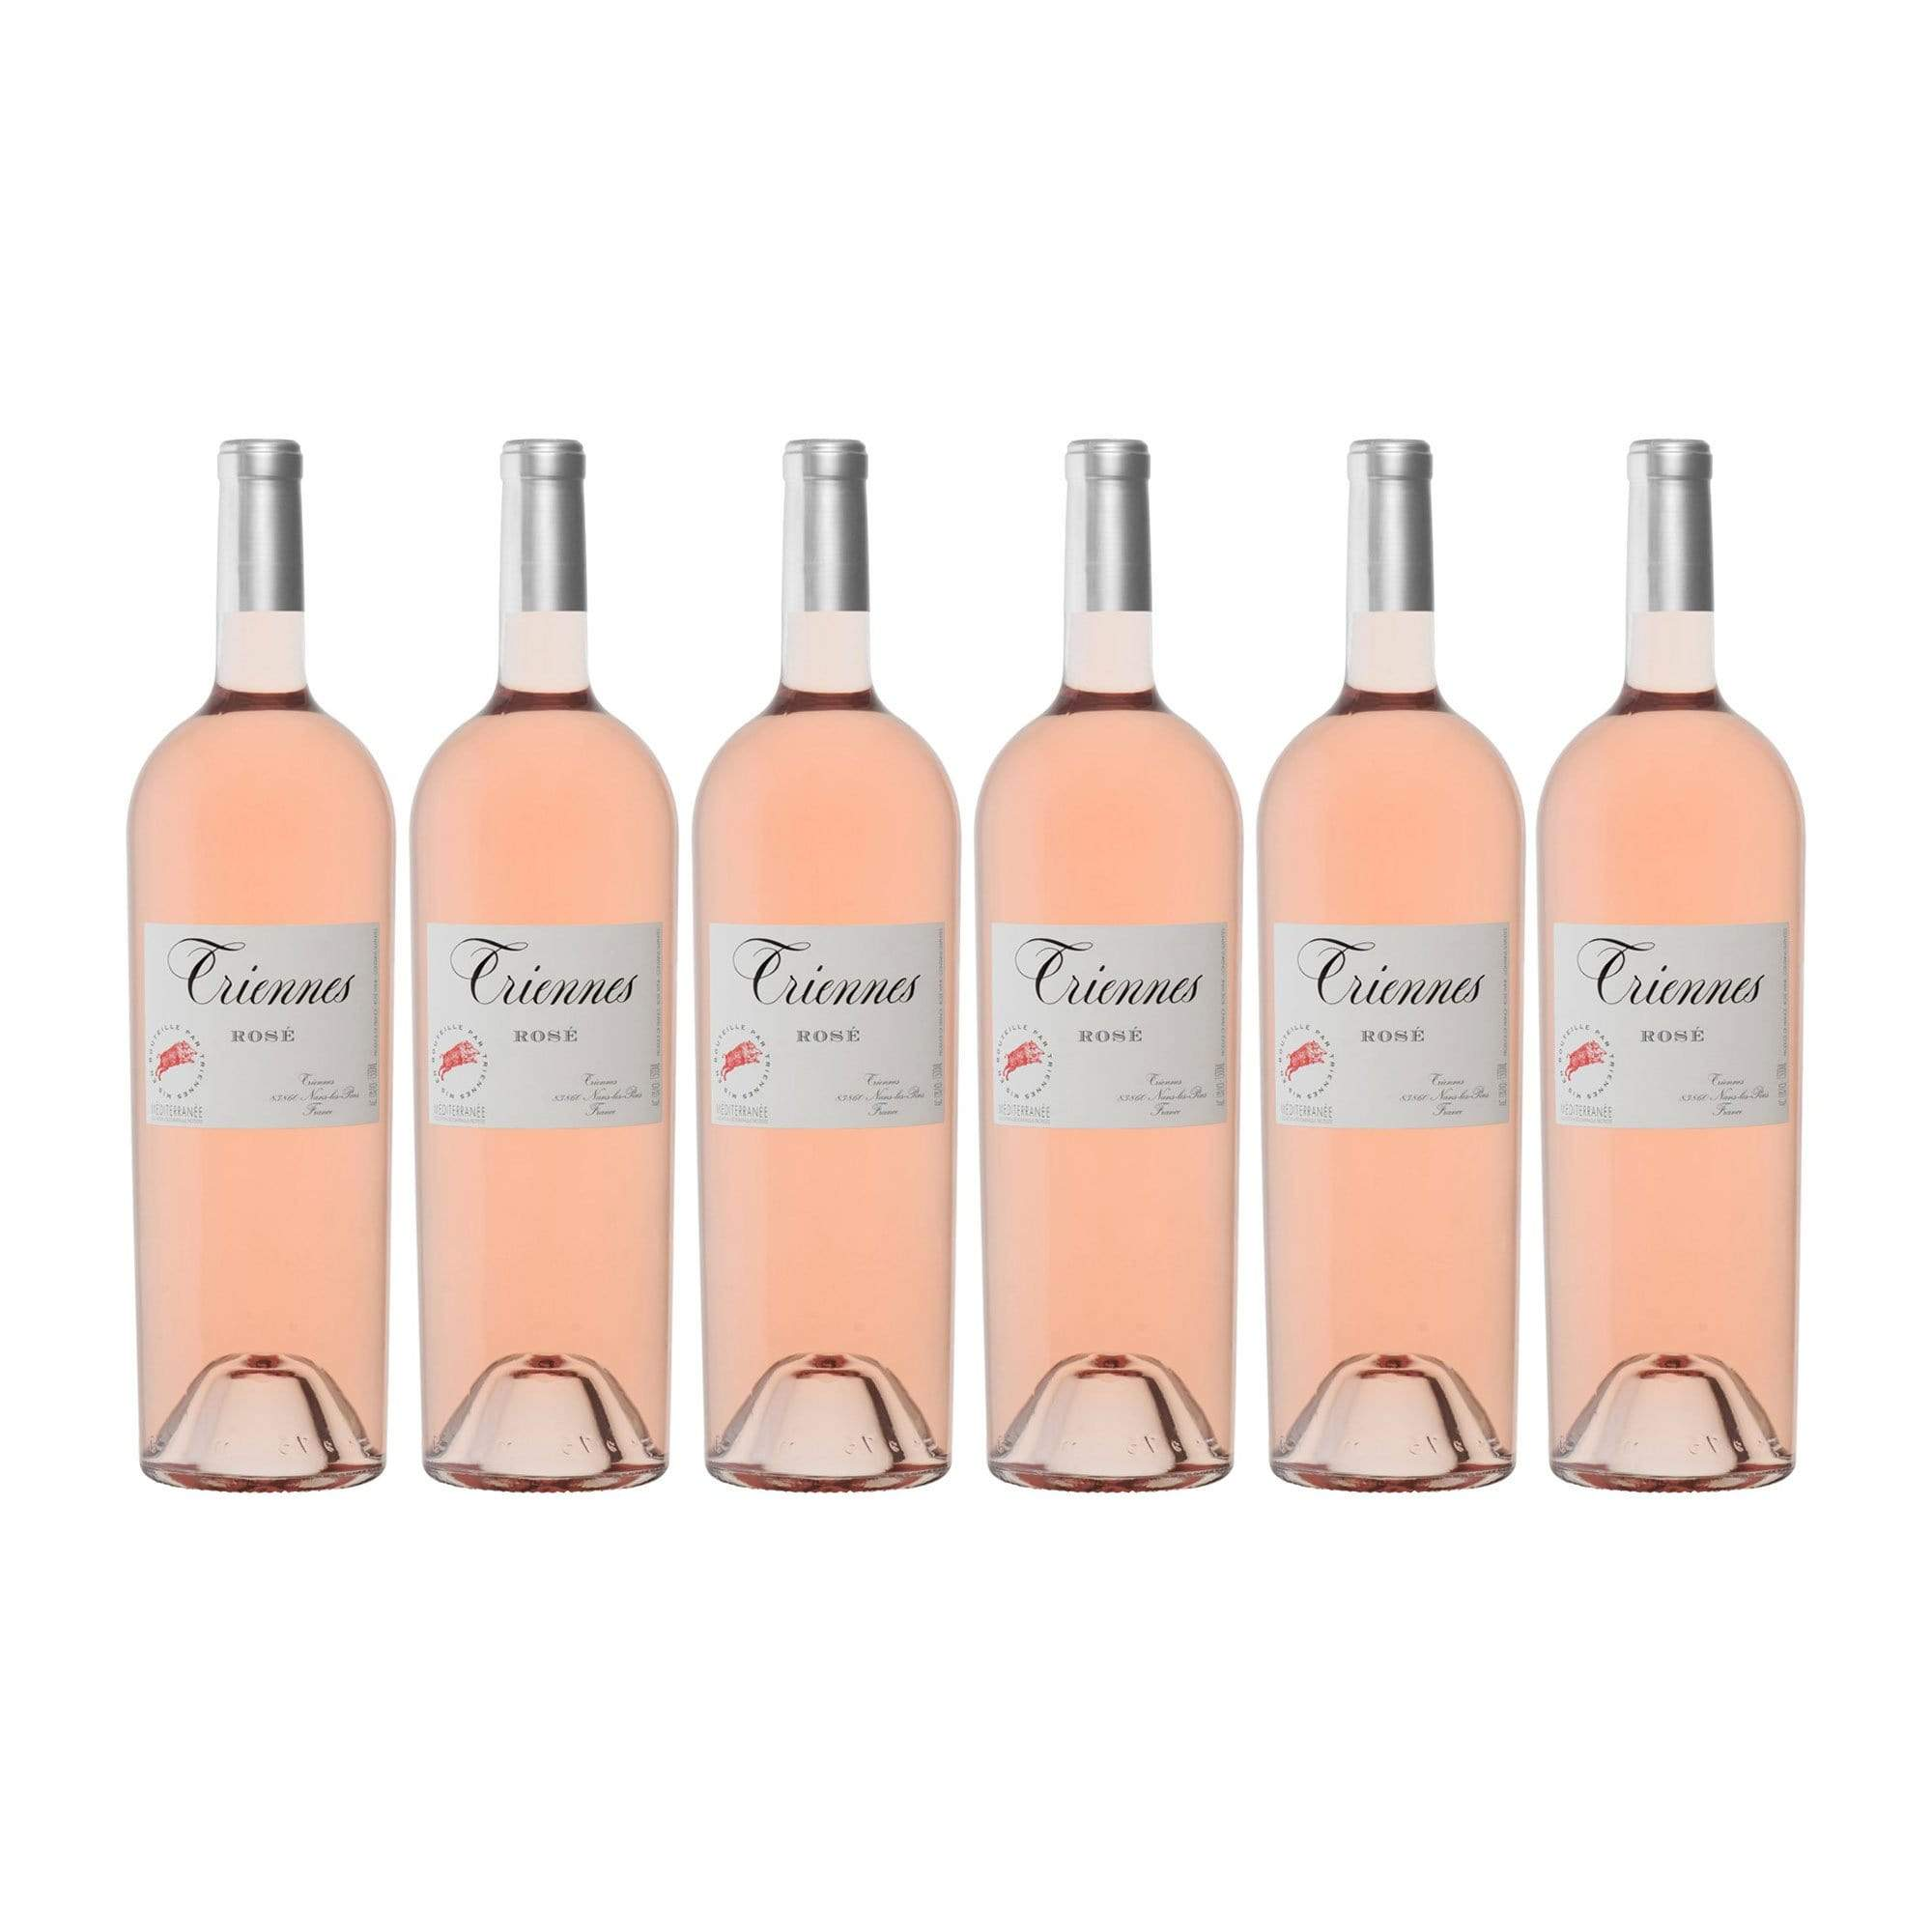 Rosé Wine Triennes Provence Rosé 2020 (Case of 6 Magnums)